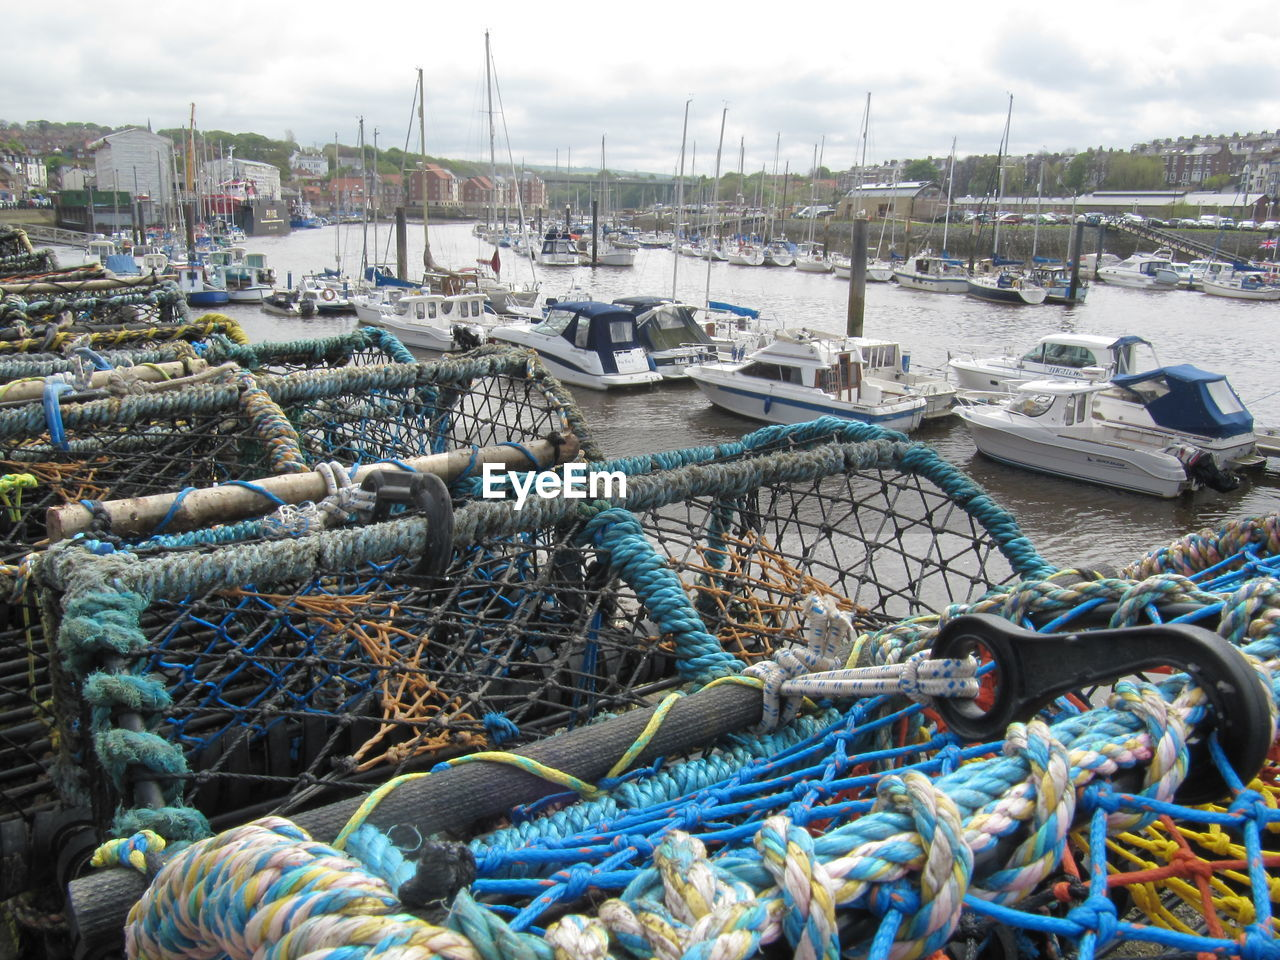 High Angle View Of Lobster Traps By Boats Moored In River